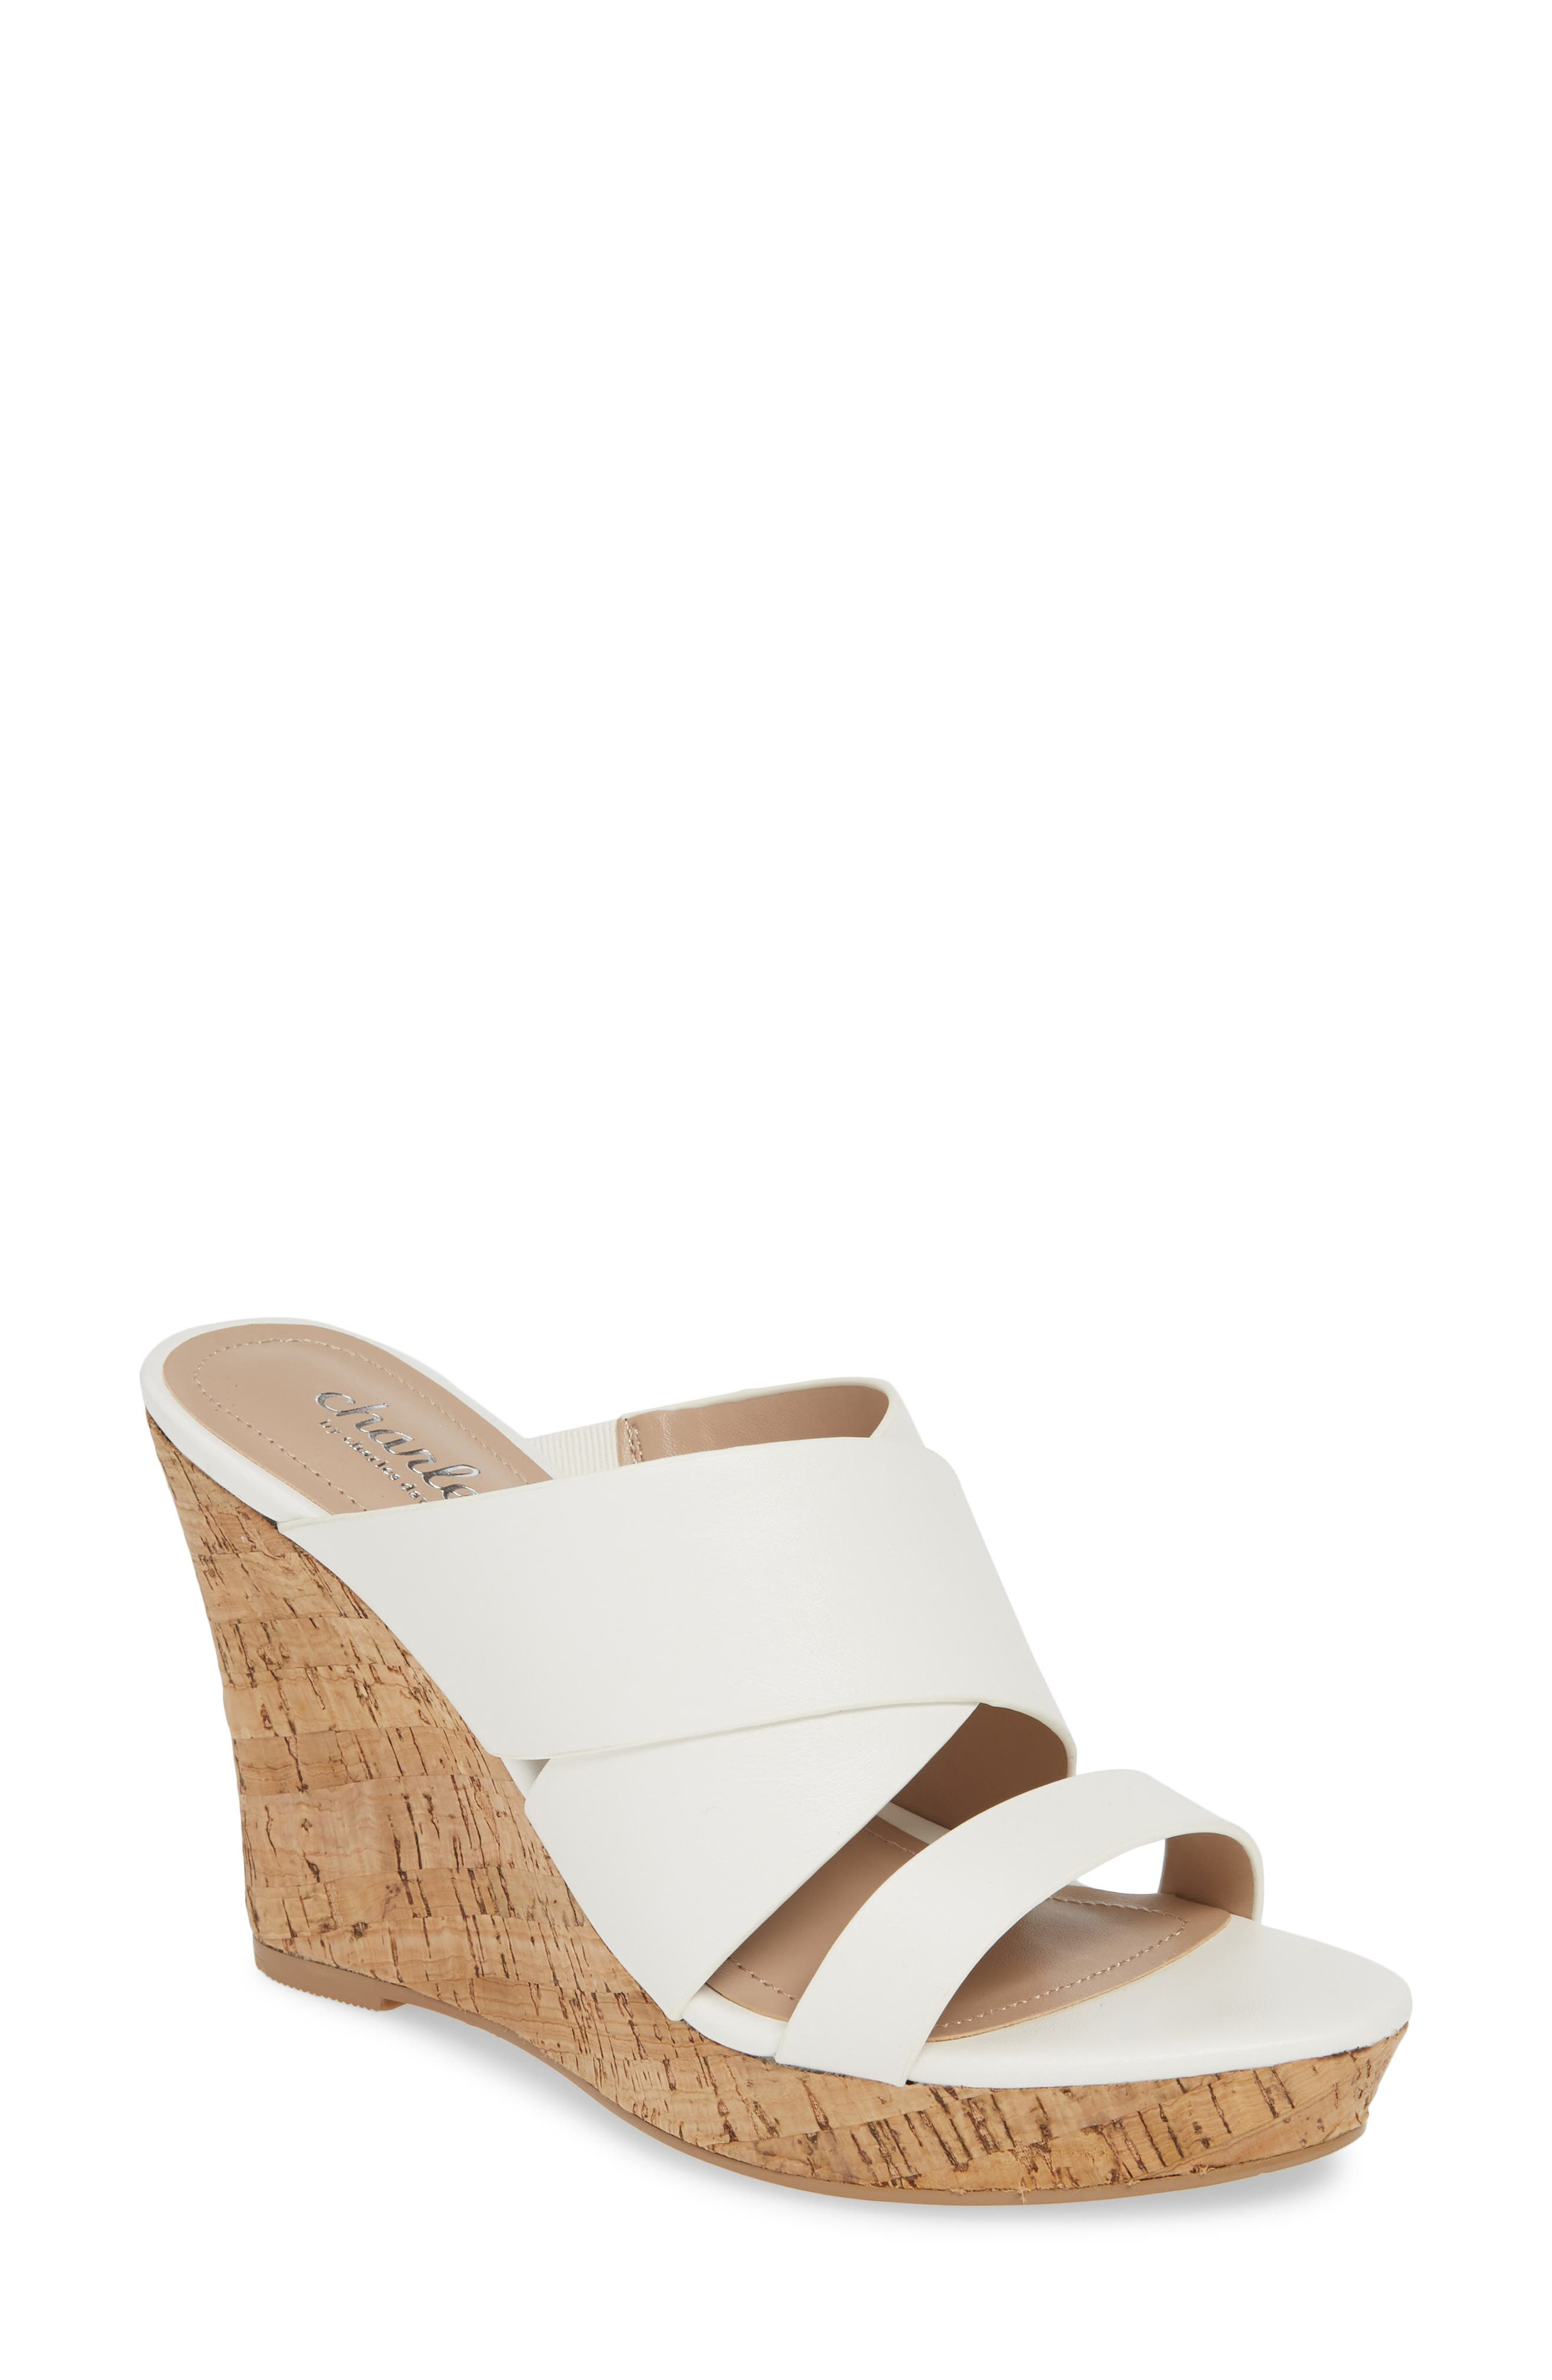 CHARLES BY CHARLES DAVID, Leslie Wedge Sandal, Main thumbnail 1, color, WHITE FAUX LEATHER